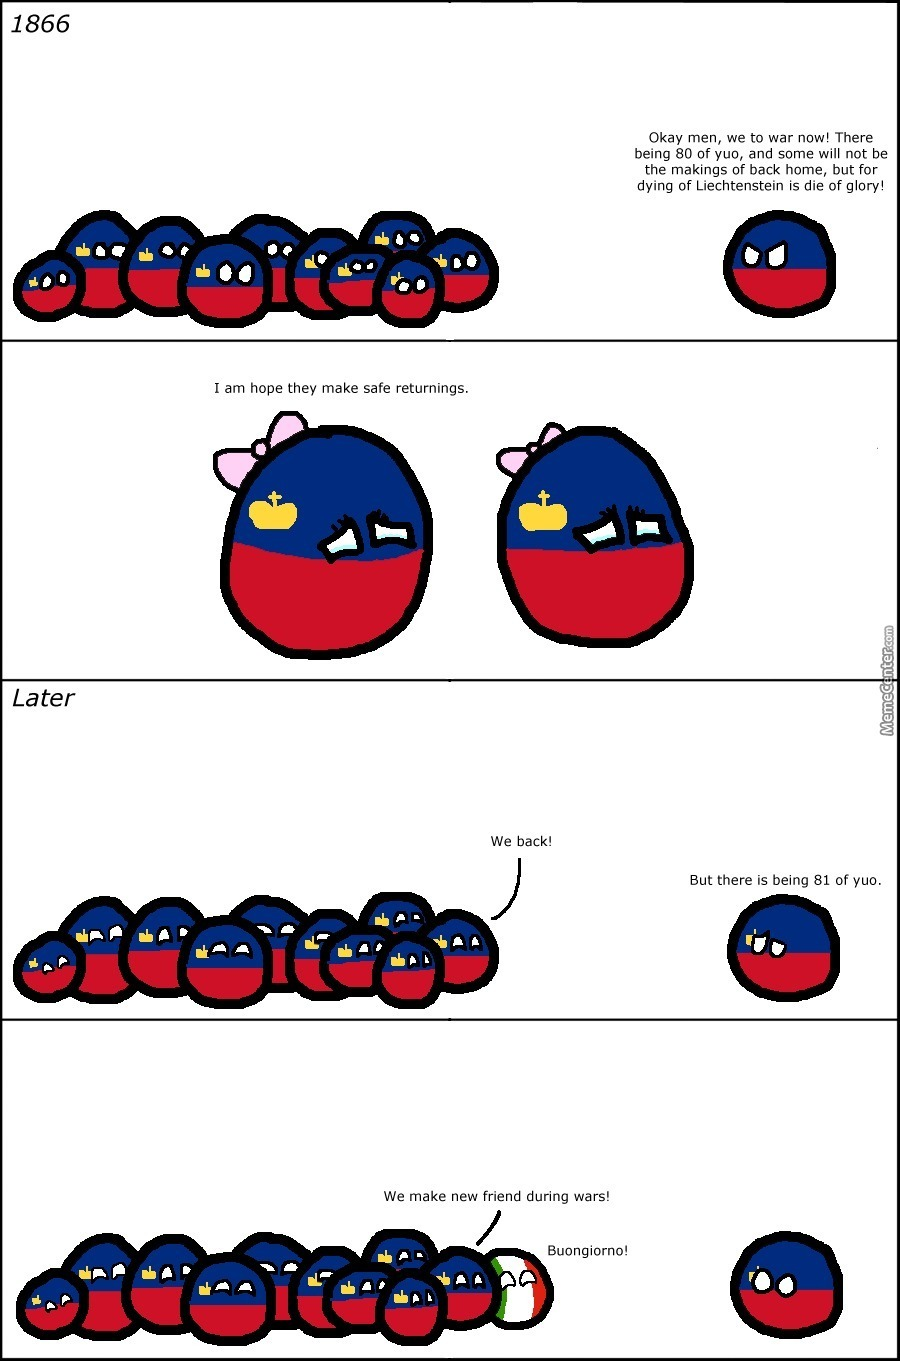 Liechtenstein War History by bloatarder - Meme Center